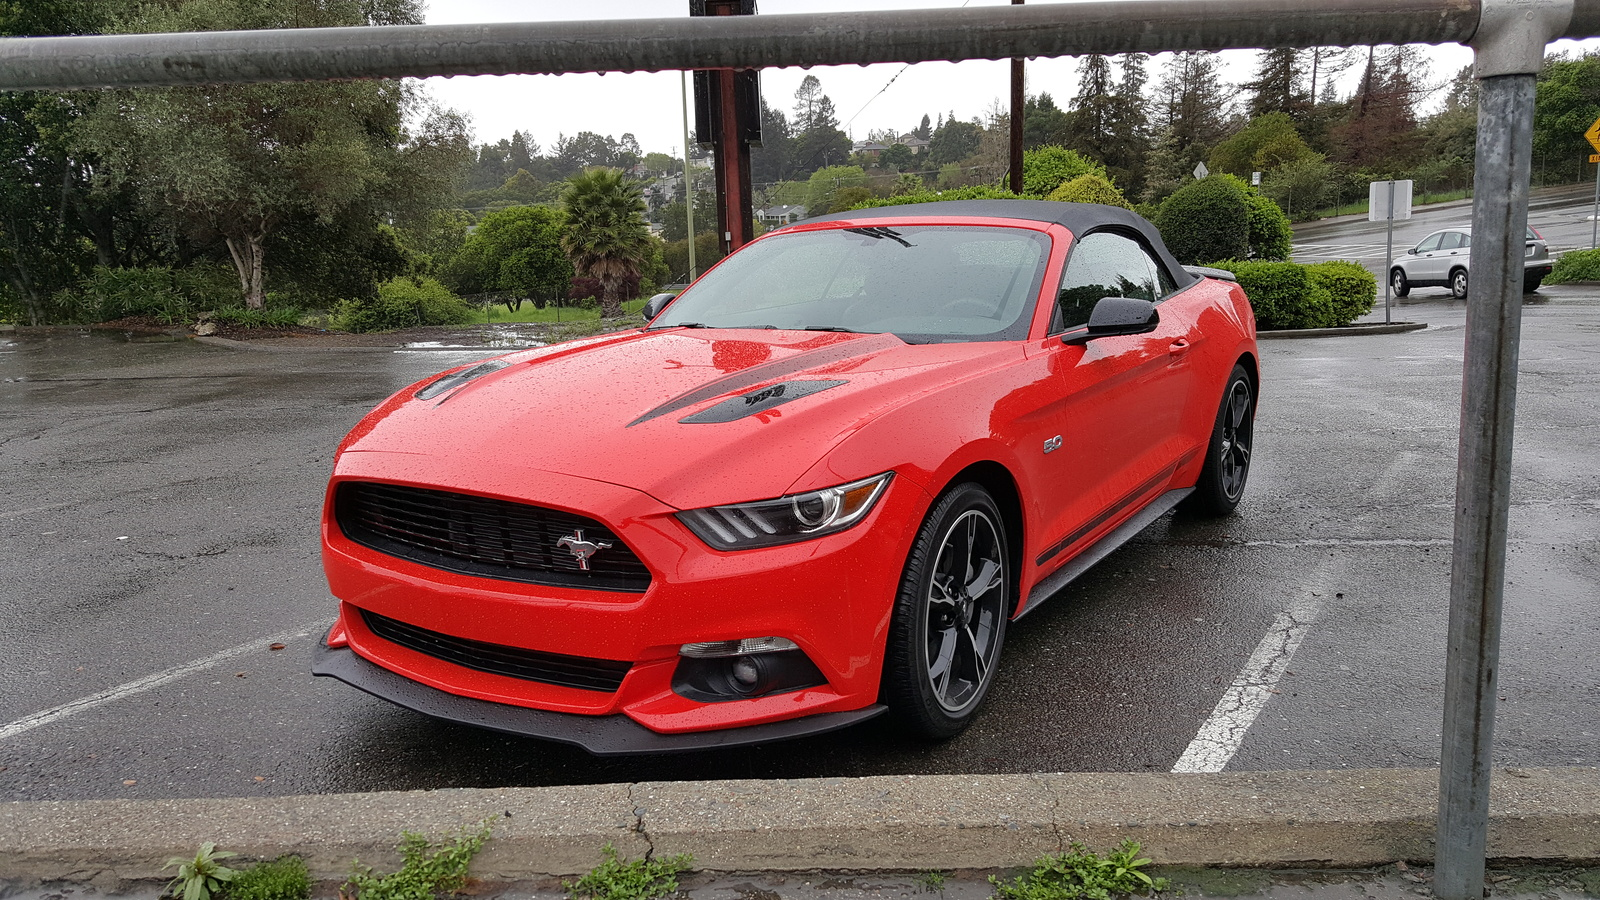 2016 / 2017 Ford Mustang for Sale in your area - CarGurus